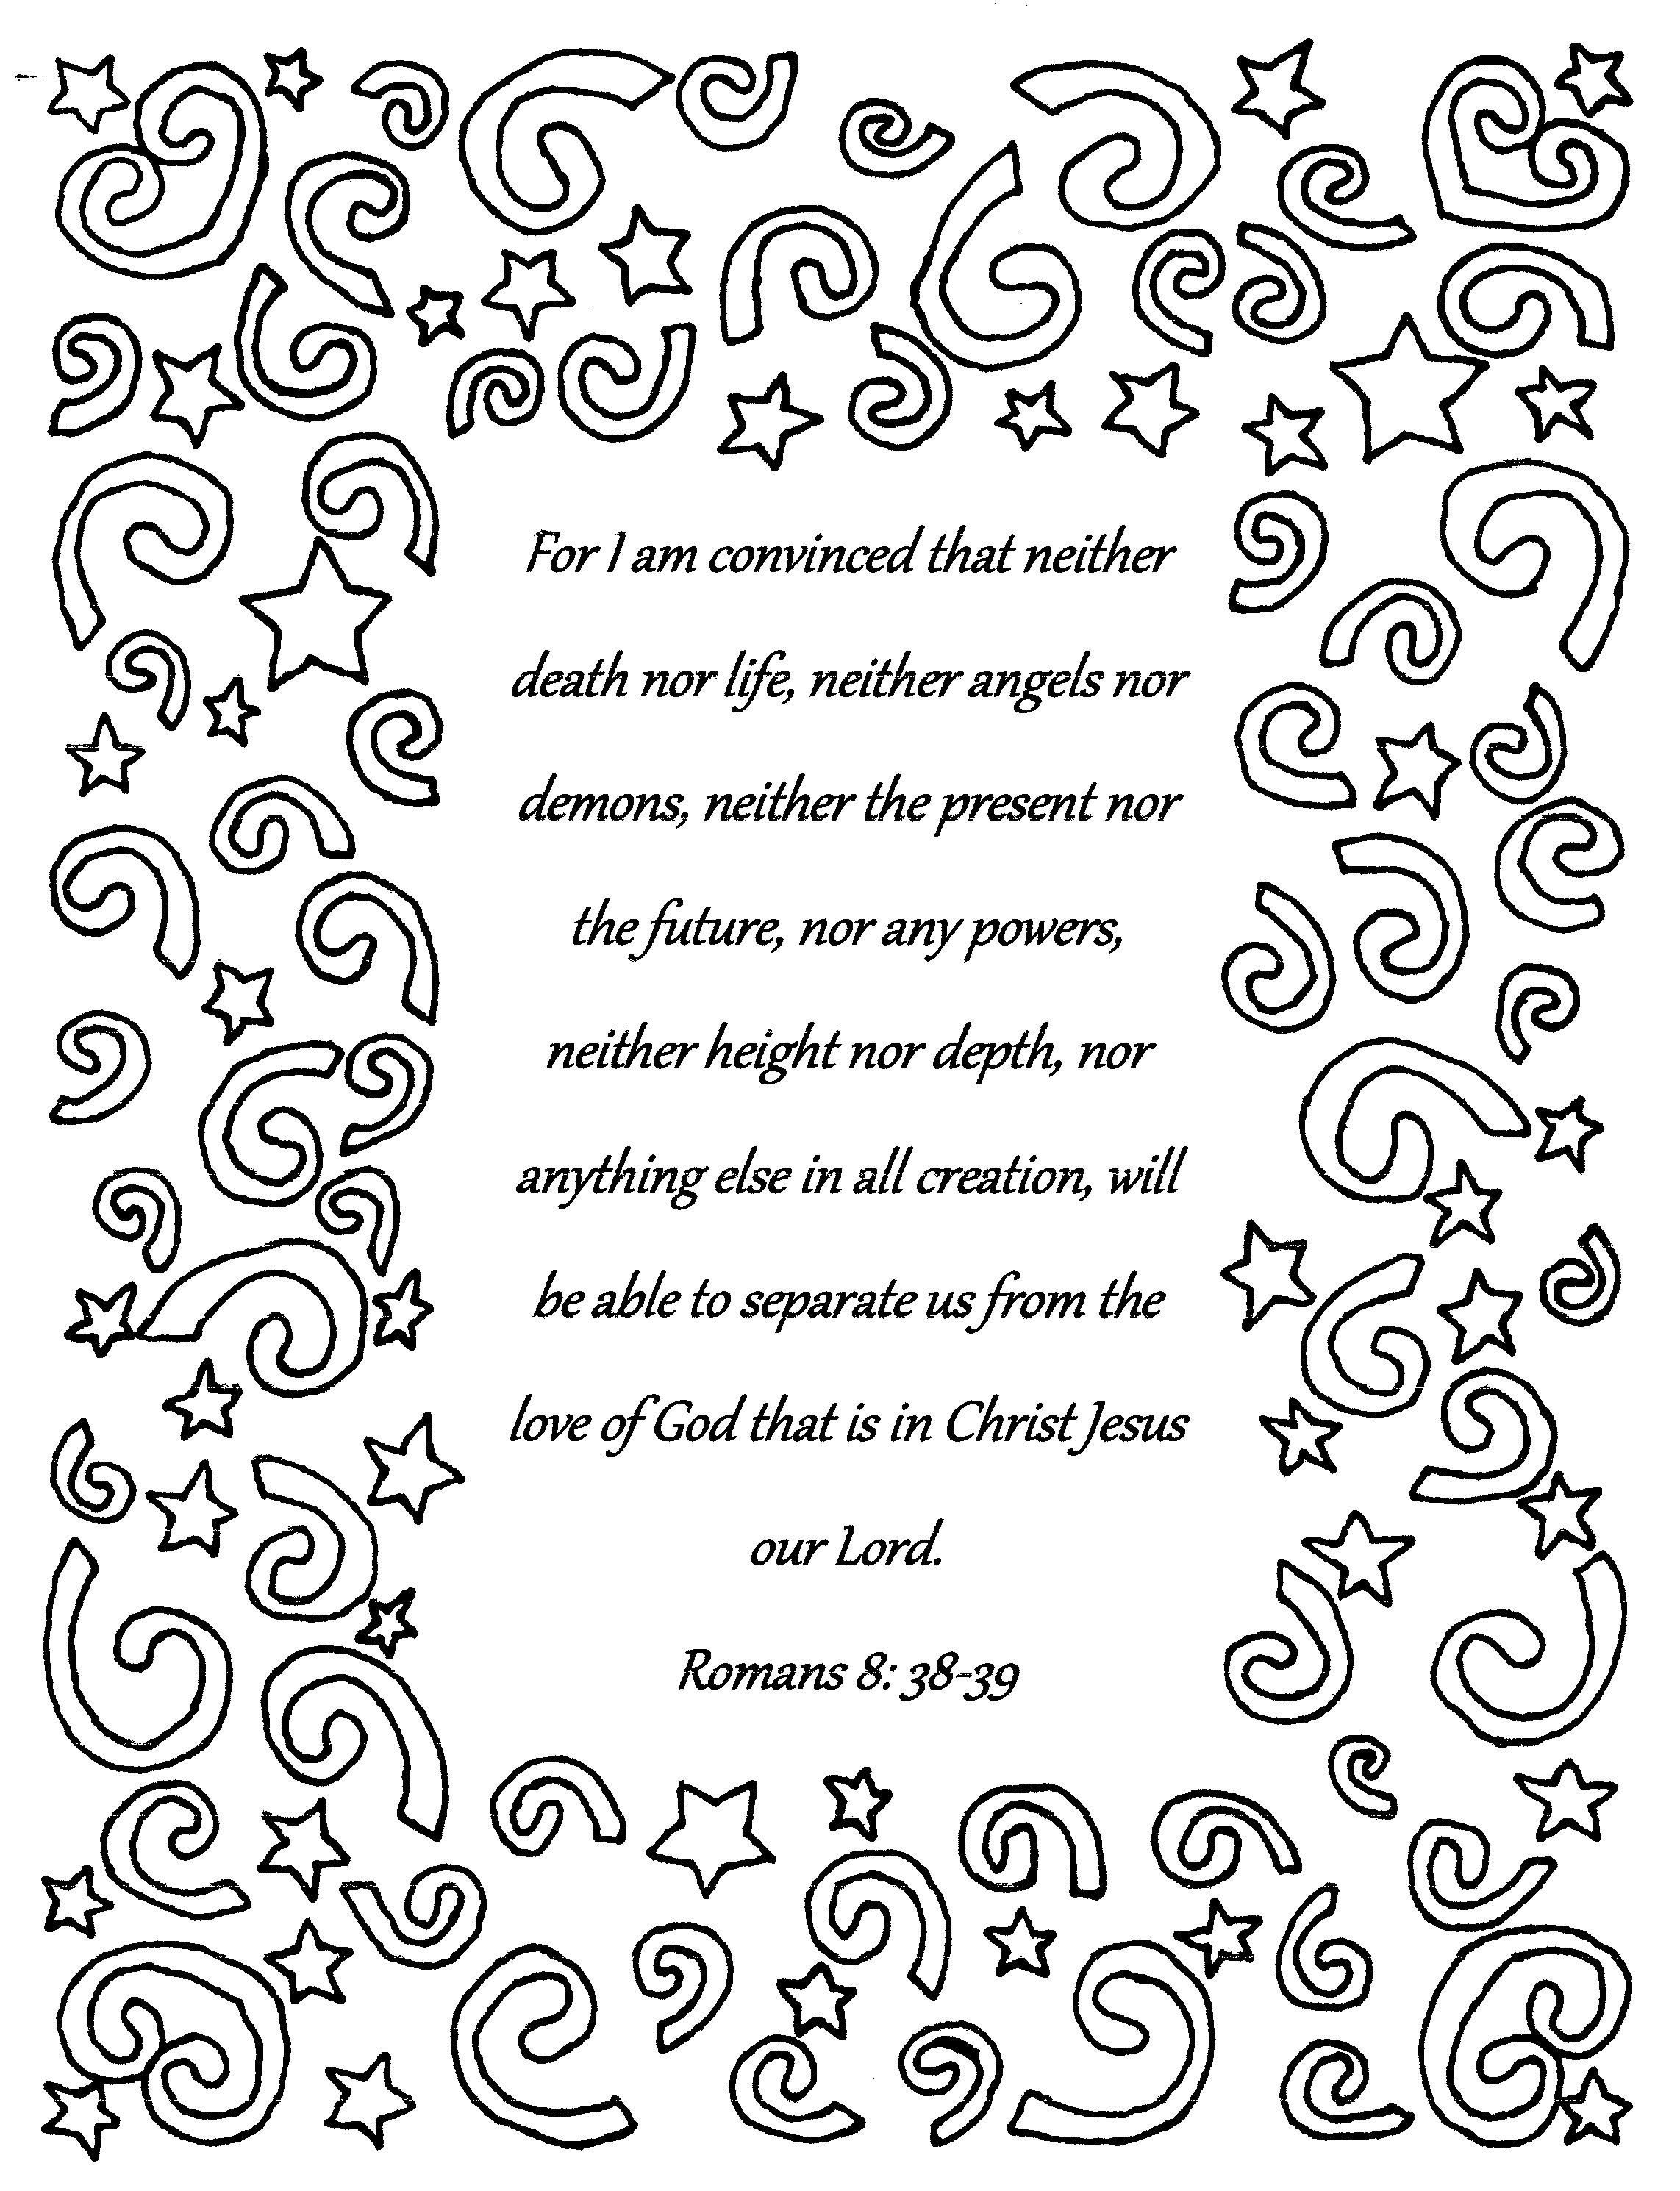 For I am convinced...Romans 8:38-39 Bible verse coloring ...